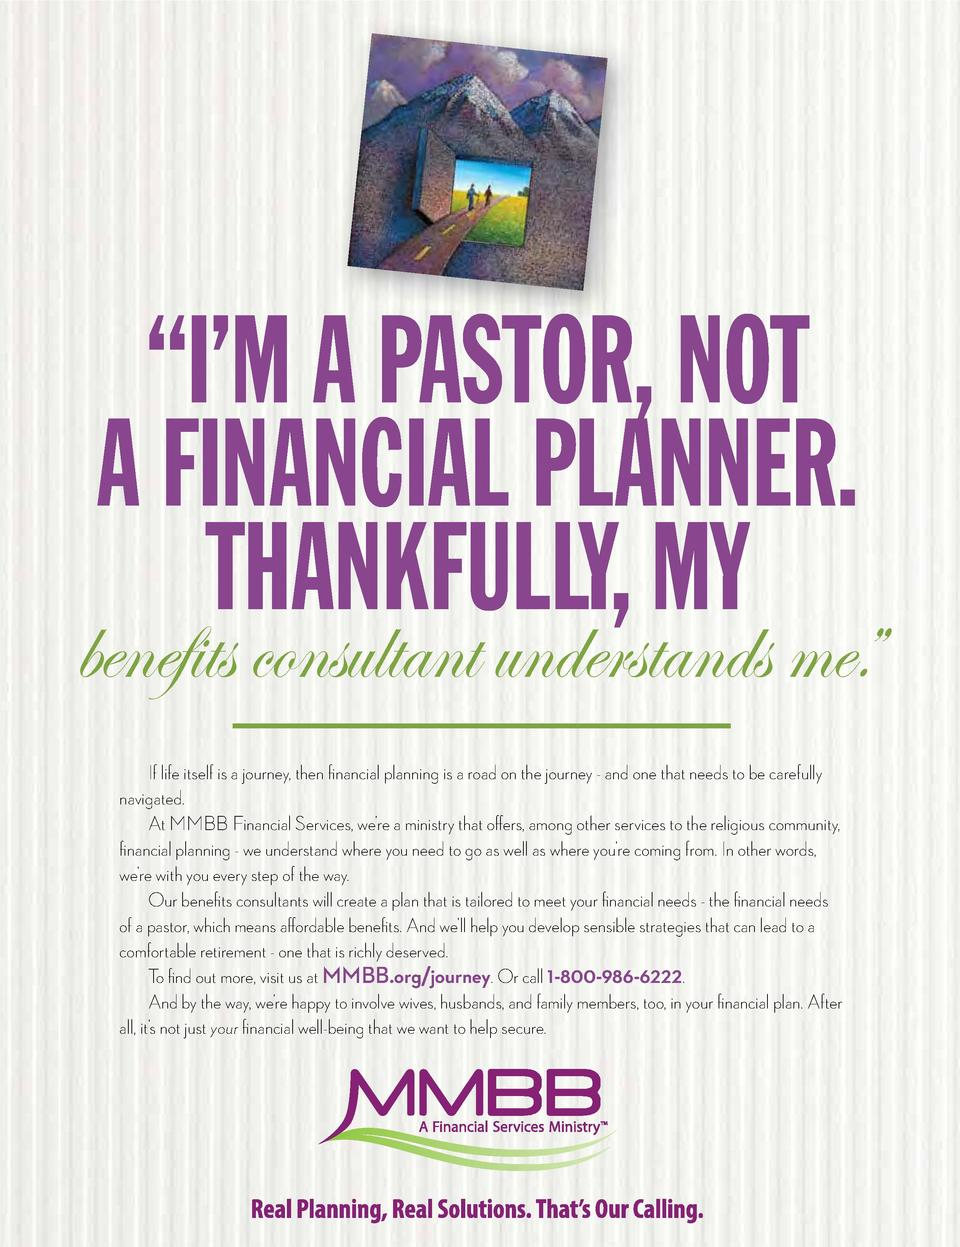 A   I   M COMFORTABLE RETIREMENT AIS PASTOR, NOT SOMETHING AEVERYONE FINANCIAL PLANNER. SHOULD SINK INTO.  THANKFULLY, MY ...